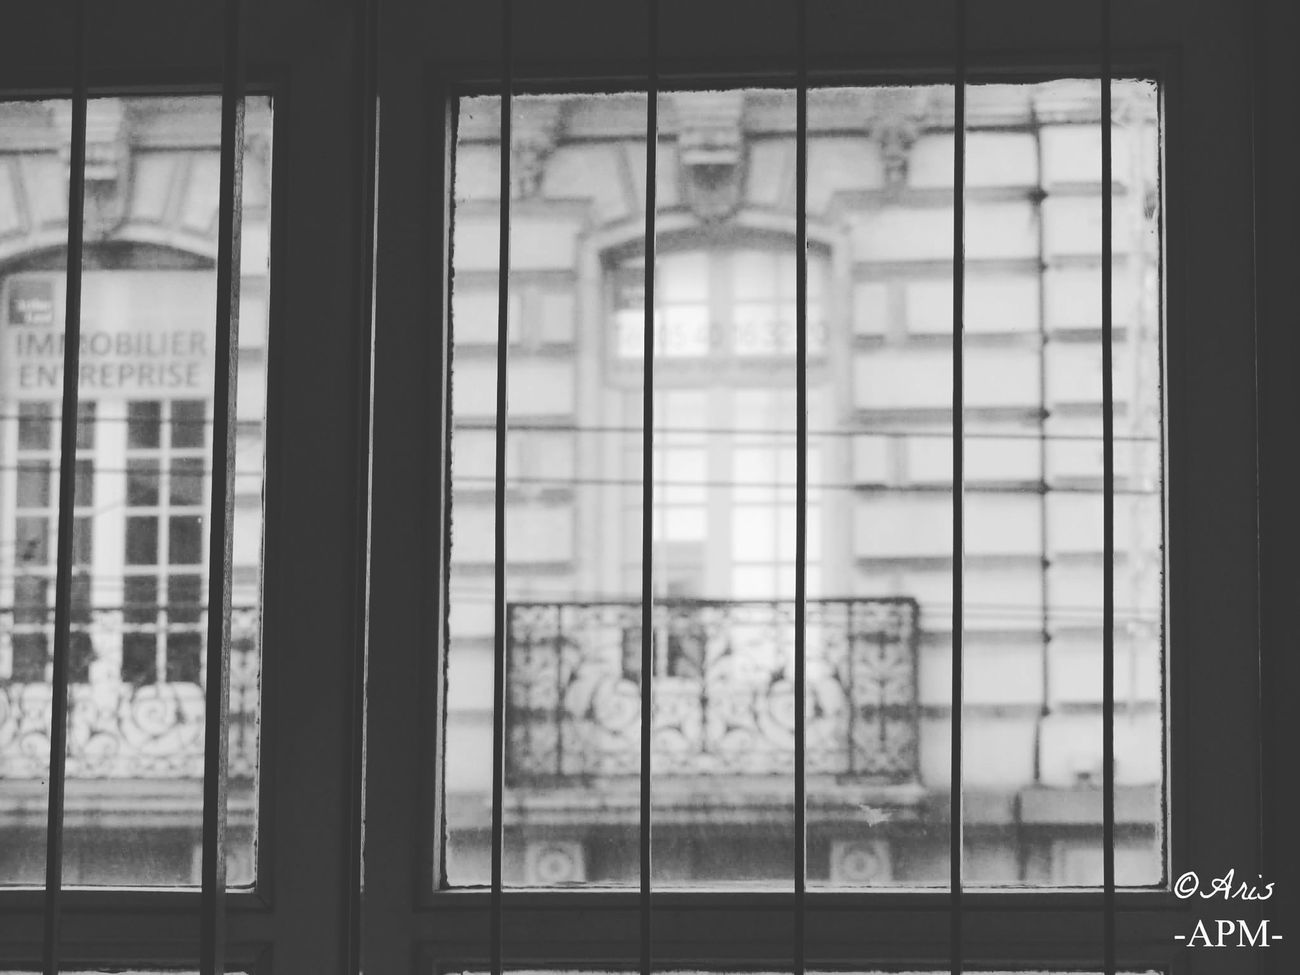 Window Indoors  Architecture Security Bar No People Built Structure Greenhouse Day Sky Close-up Sliding Door Aris Philoxene Meyborn Black & White Photography Photography Tranquility People Limoges Picture French Francephotographer Fragility Old Prison